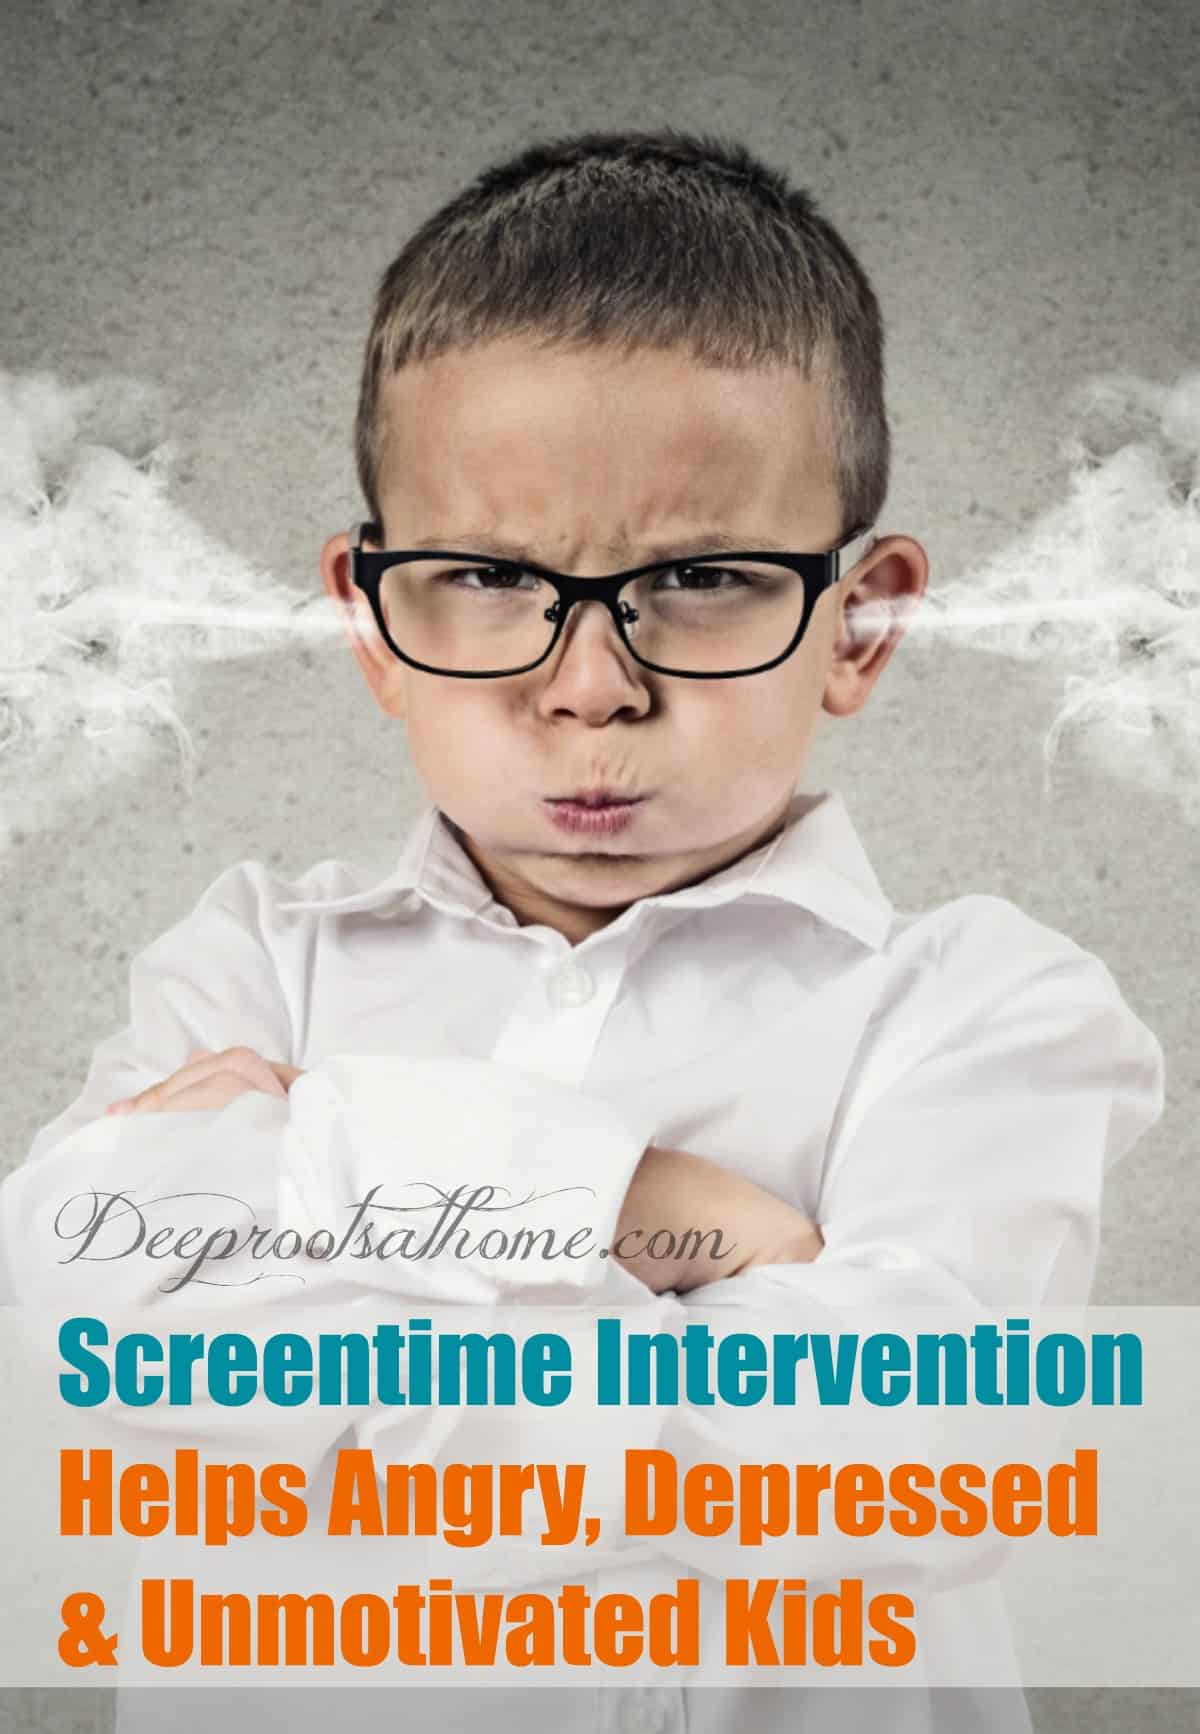 Screentime Intervention Helps Angry, Depressed & Unmotivated Kids, angry little boy with steam coming out his ears. Pin image